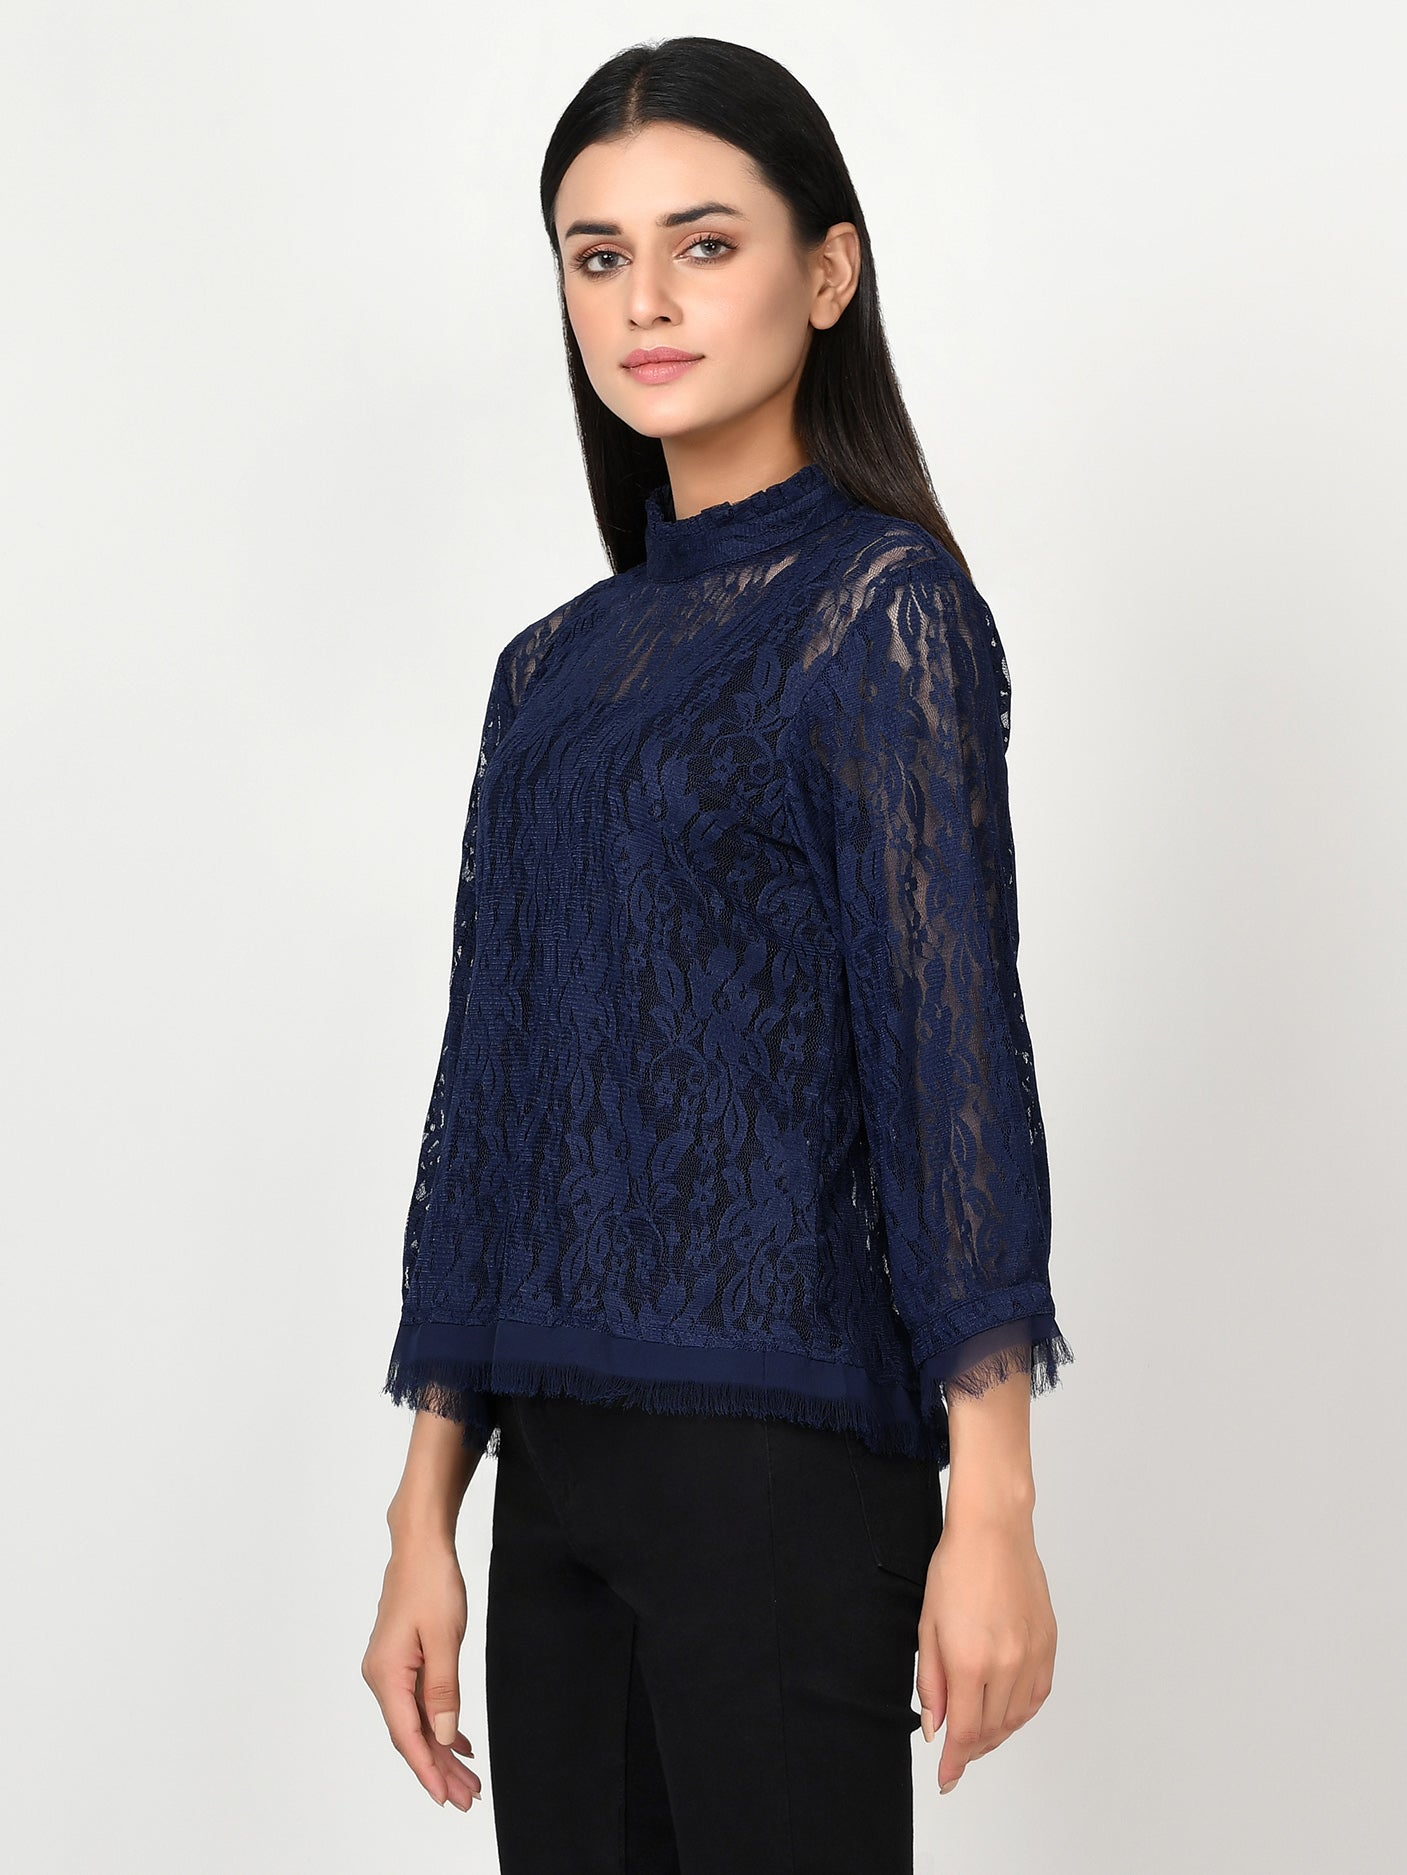 Plain Net Top